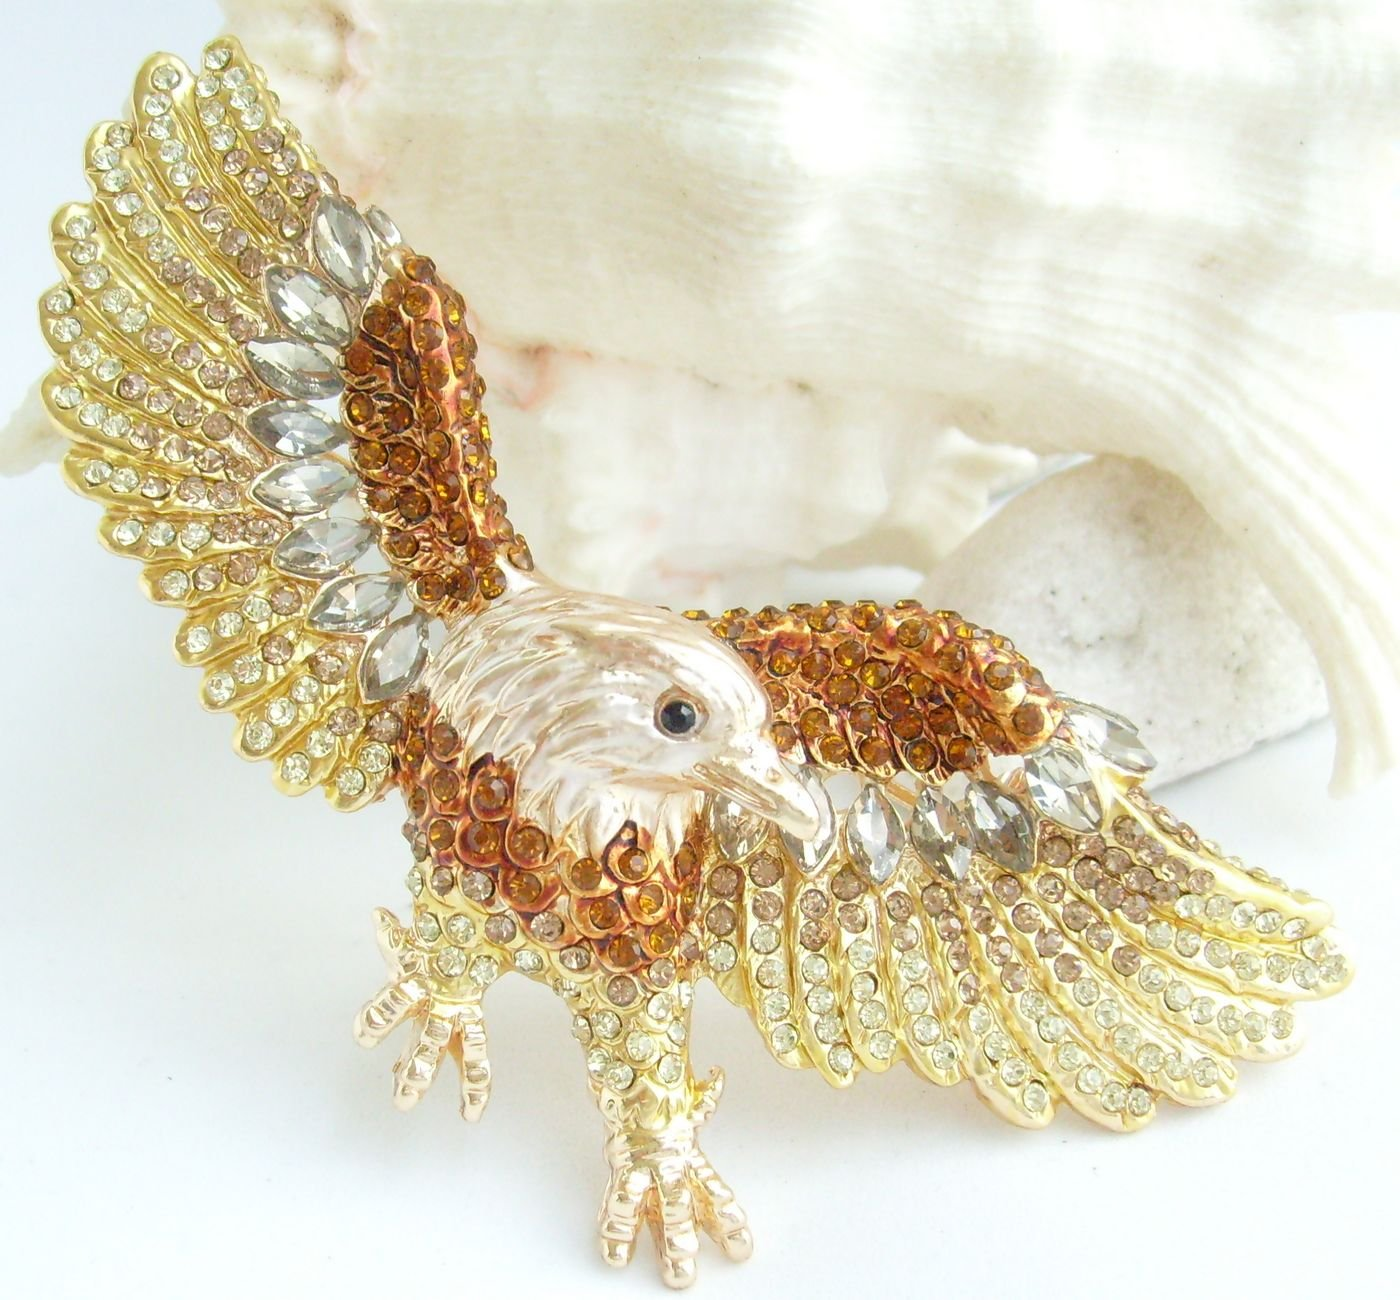 Sindary Unique 3.15'' Eagle Brooch Pin Rhinestone Crystal Pendant BZ4717 (Gold-Tone Brown) by Animal Brooch-Sindary Jewelry (Image #5)